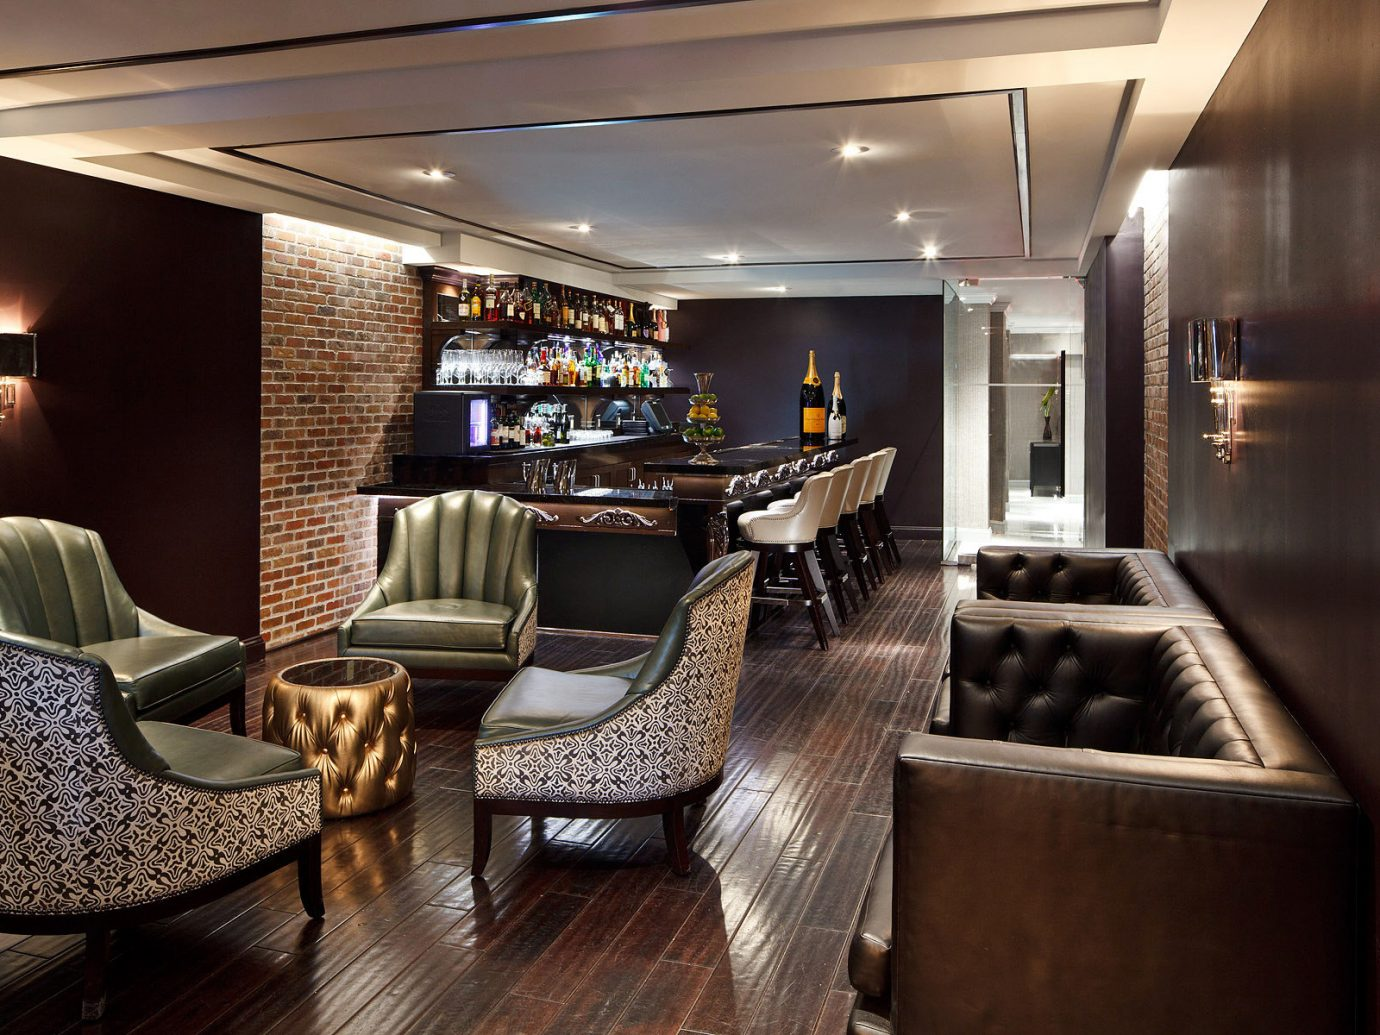 Bar Boutique Hotels City Drink Eat Hotels Lounge Modern Rooftop Scenic views indoor floor ceiling room property Lobby living room home estate interior design lighting real estate condominium Suite Design restaurant dining room basement furniture